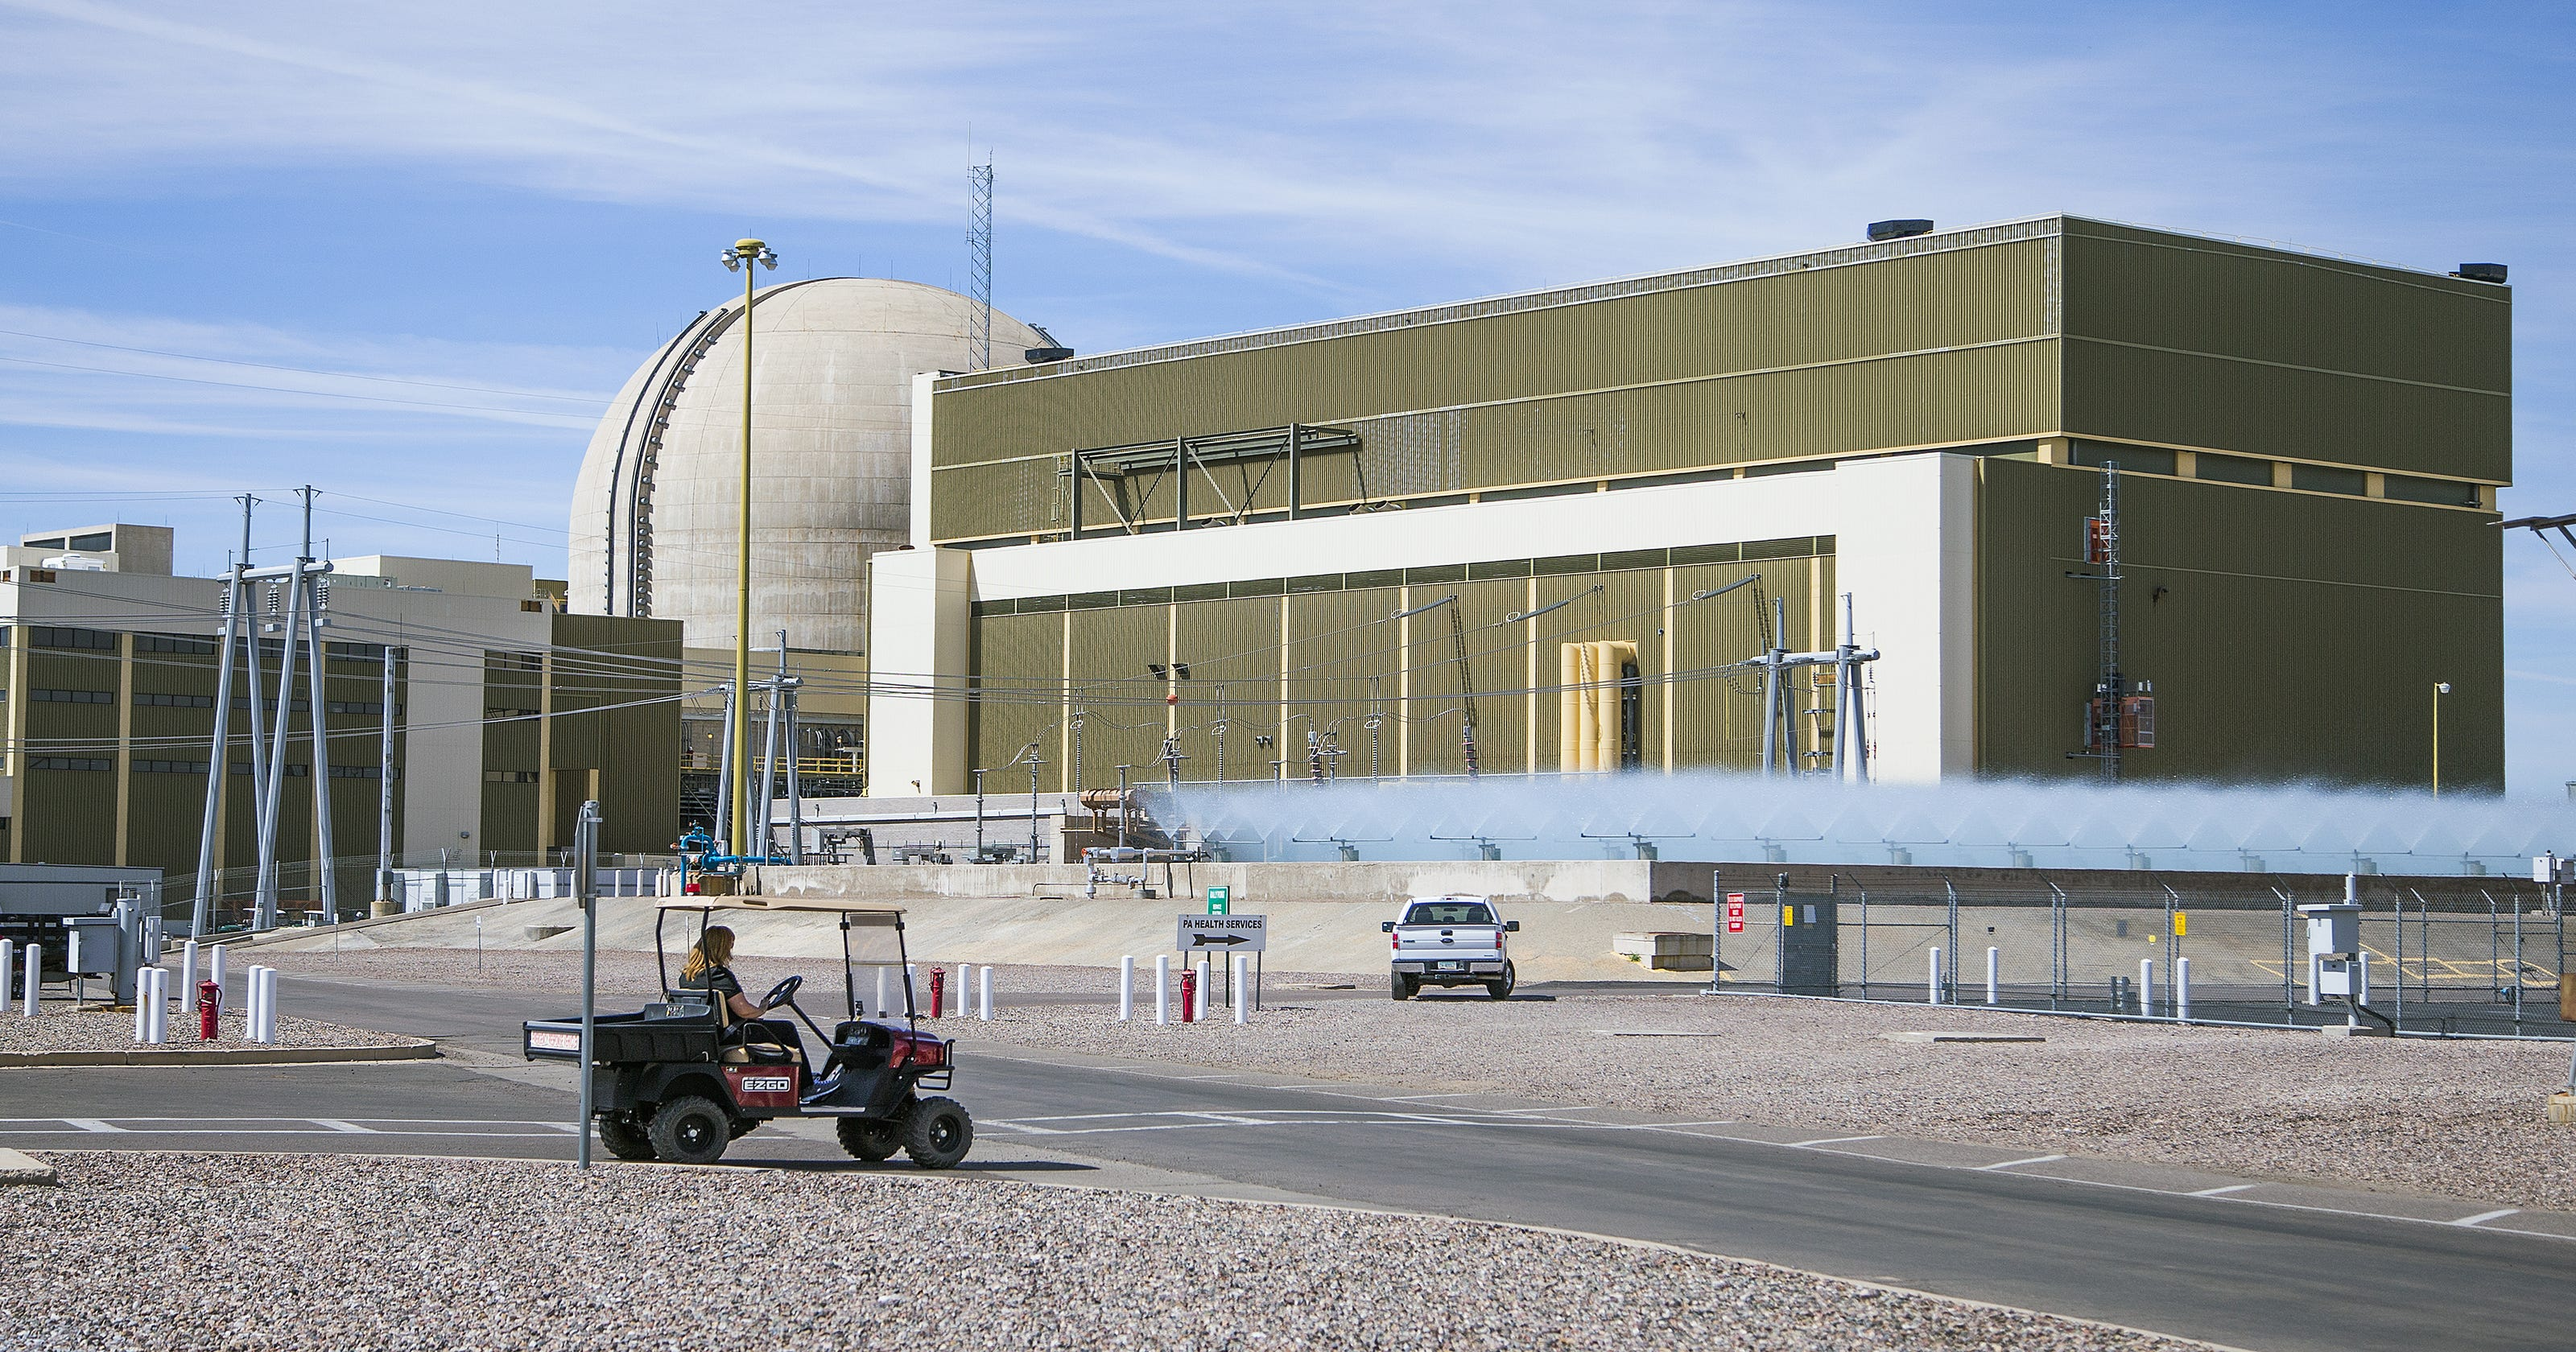 Arizona Clean Energy Ballot Measure Could Close Palo Verde Nuclear Plant Having Fed And Operated The Fitting Or Appliance Electricity Passes